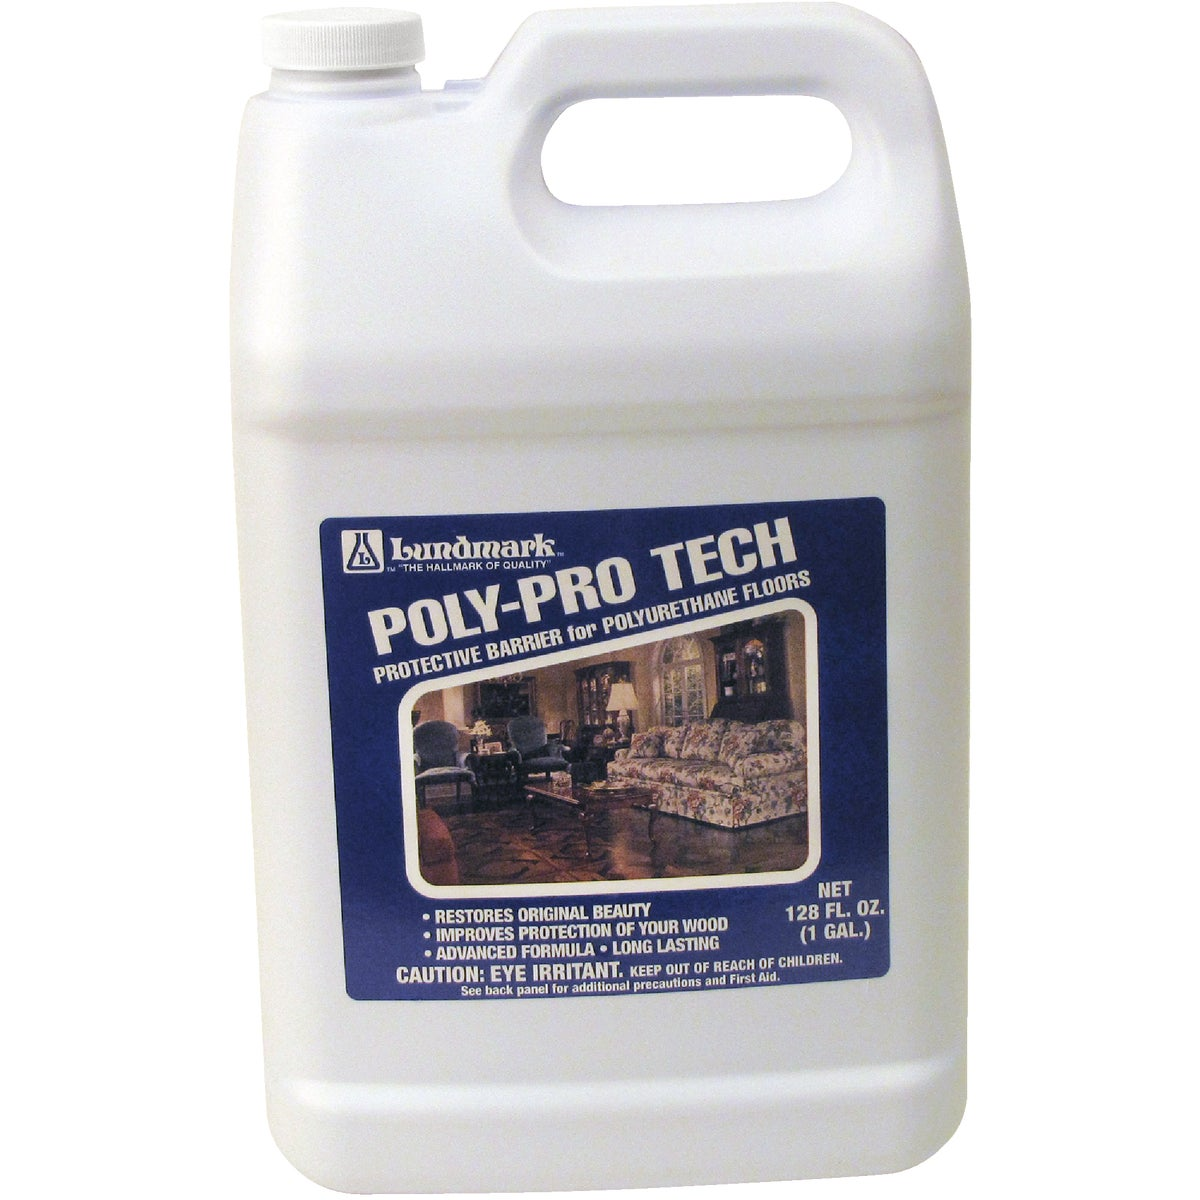 GALLON POLY-PRO TECH WAX - 3228G01-2 by Lundmark Wax Co